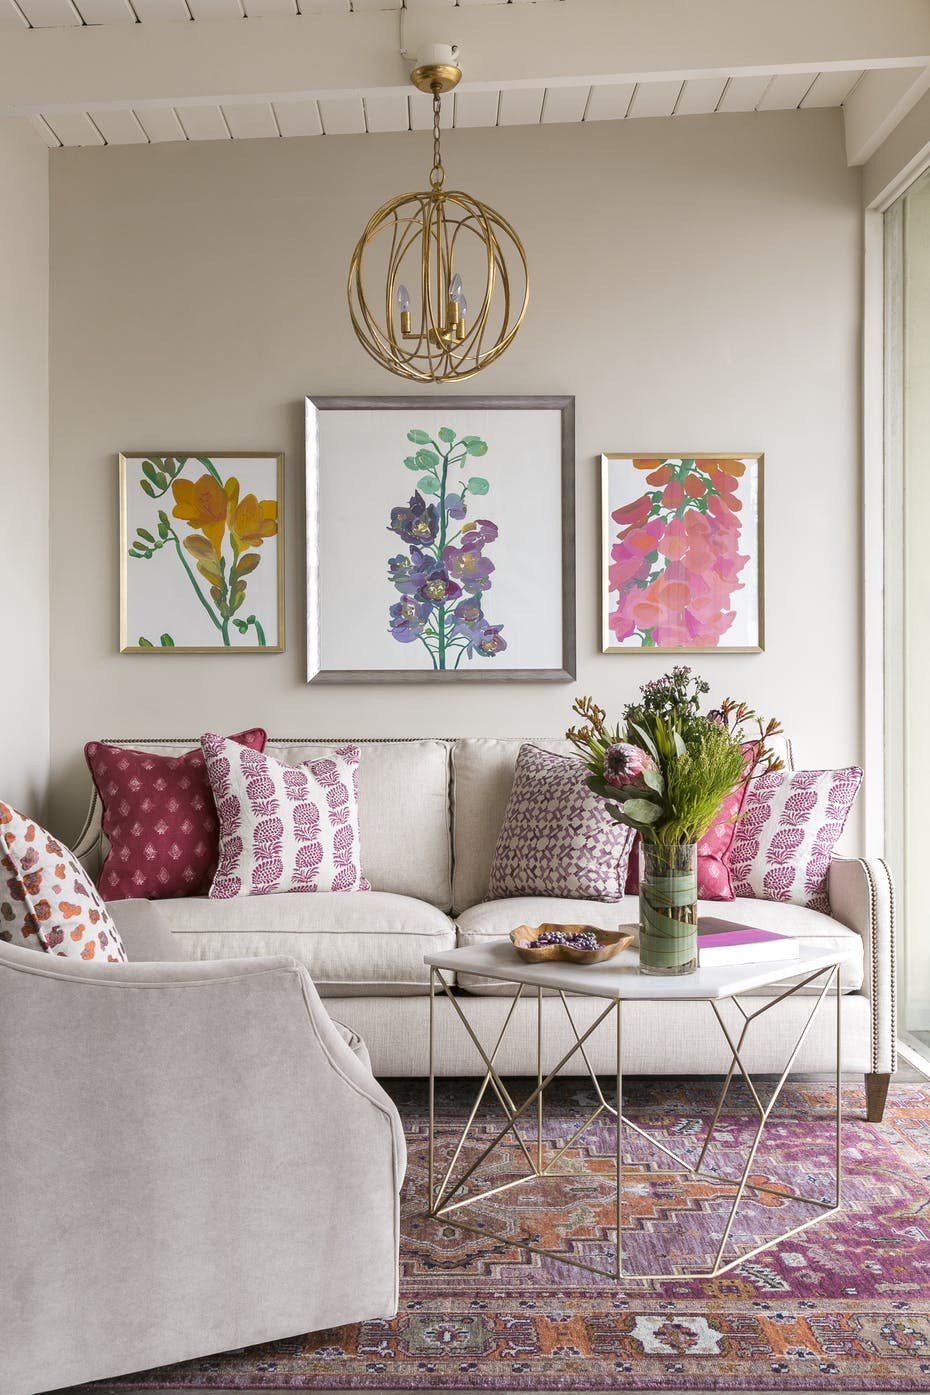 Living Room Design for Summer Summer Decorating Ideas by Dering Hall Design